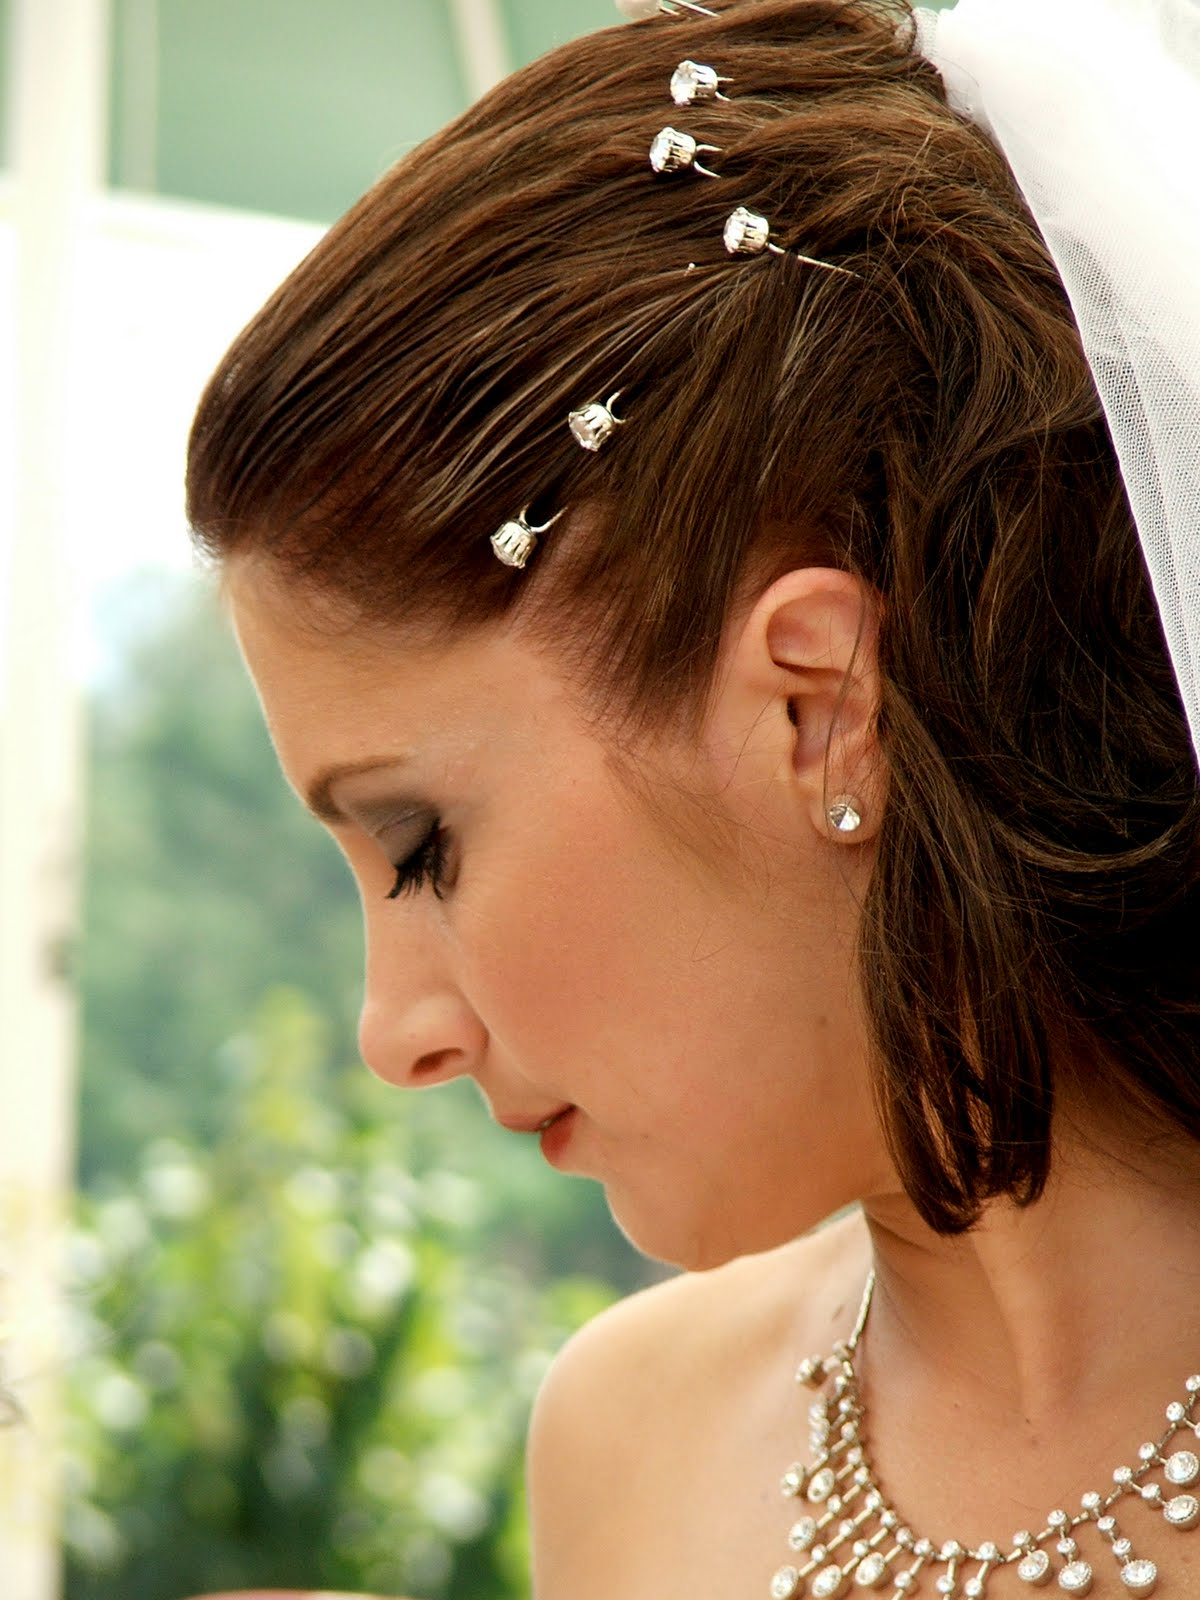 Bridal Veil Ideas For Short Hair Styles Inside Short Haircuts For Studs (View 12 of 25)